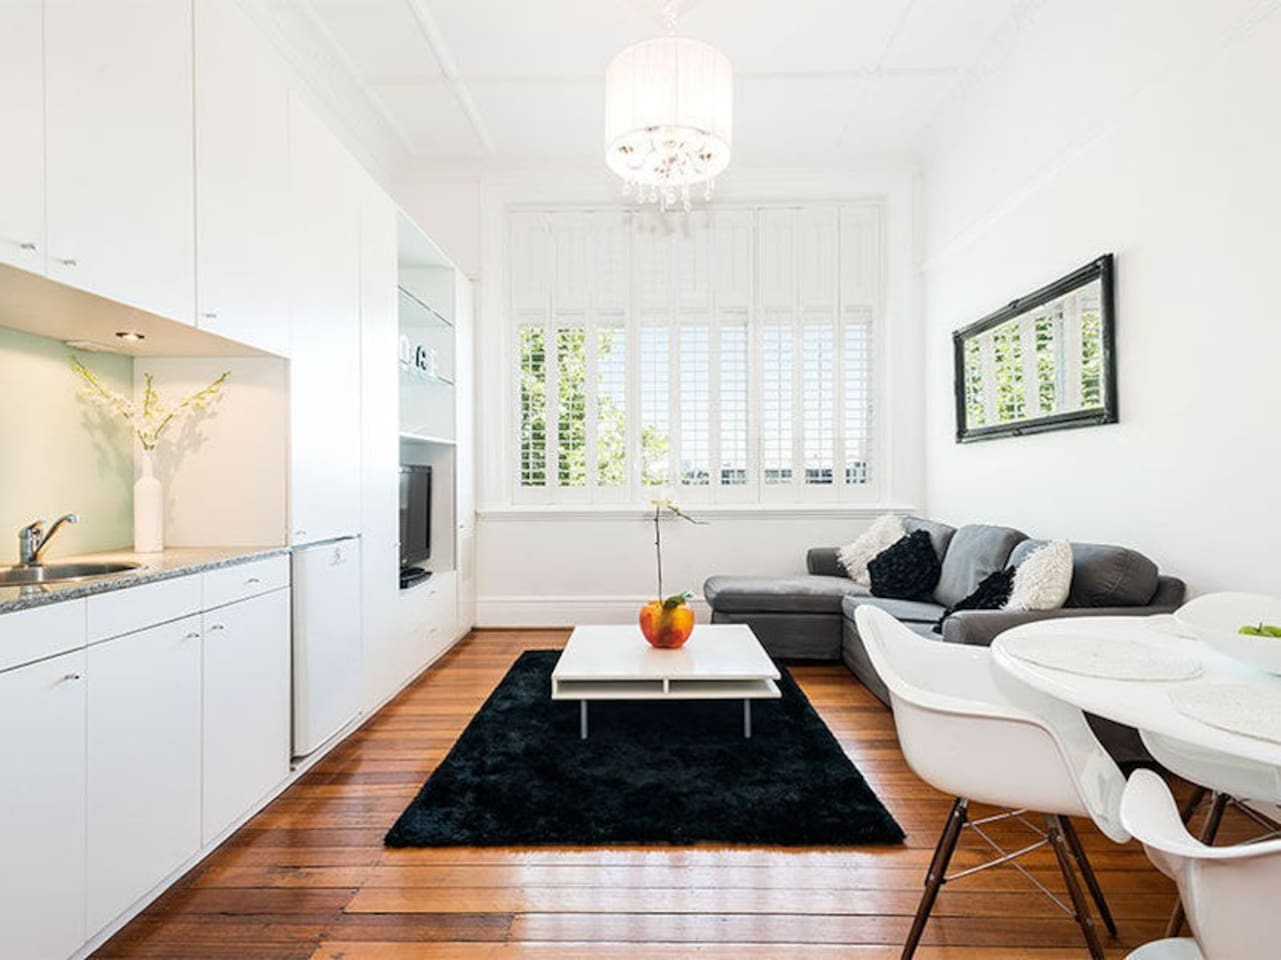 Sitting room flooded with natural light. Looking onto Fitzroy street.